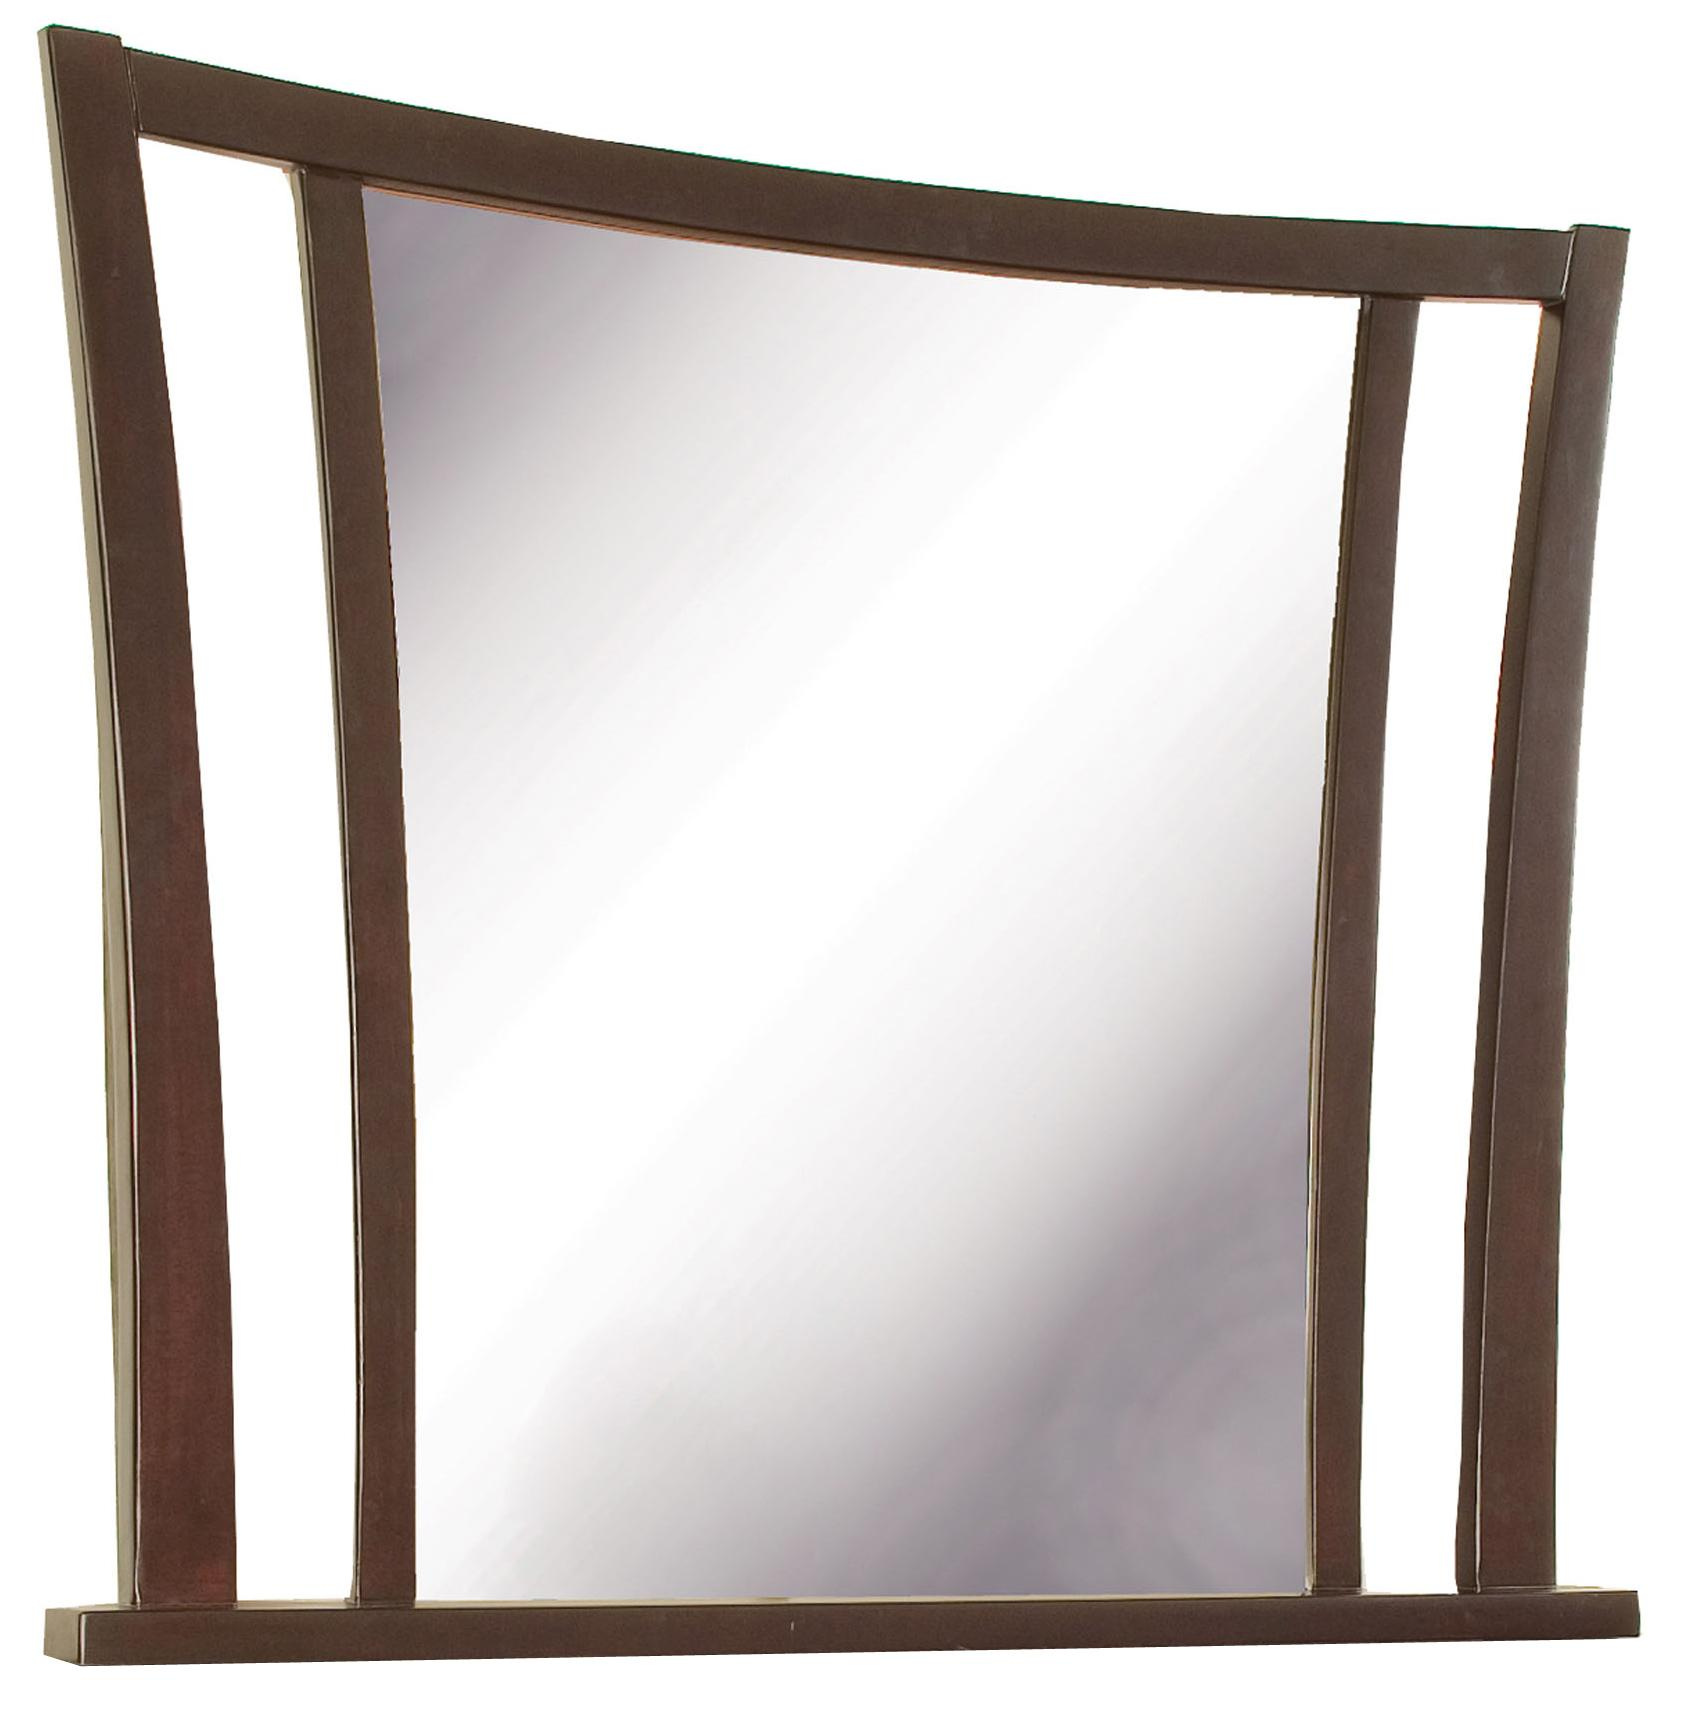 Aspenhome Kensington  Mirror - Item Number: IKJ-462